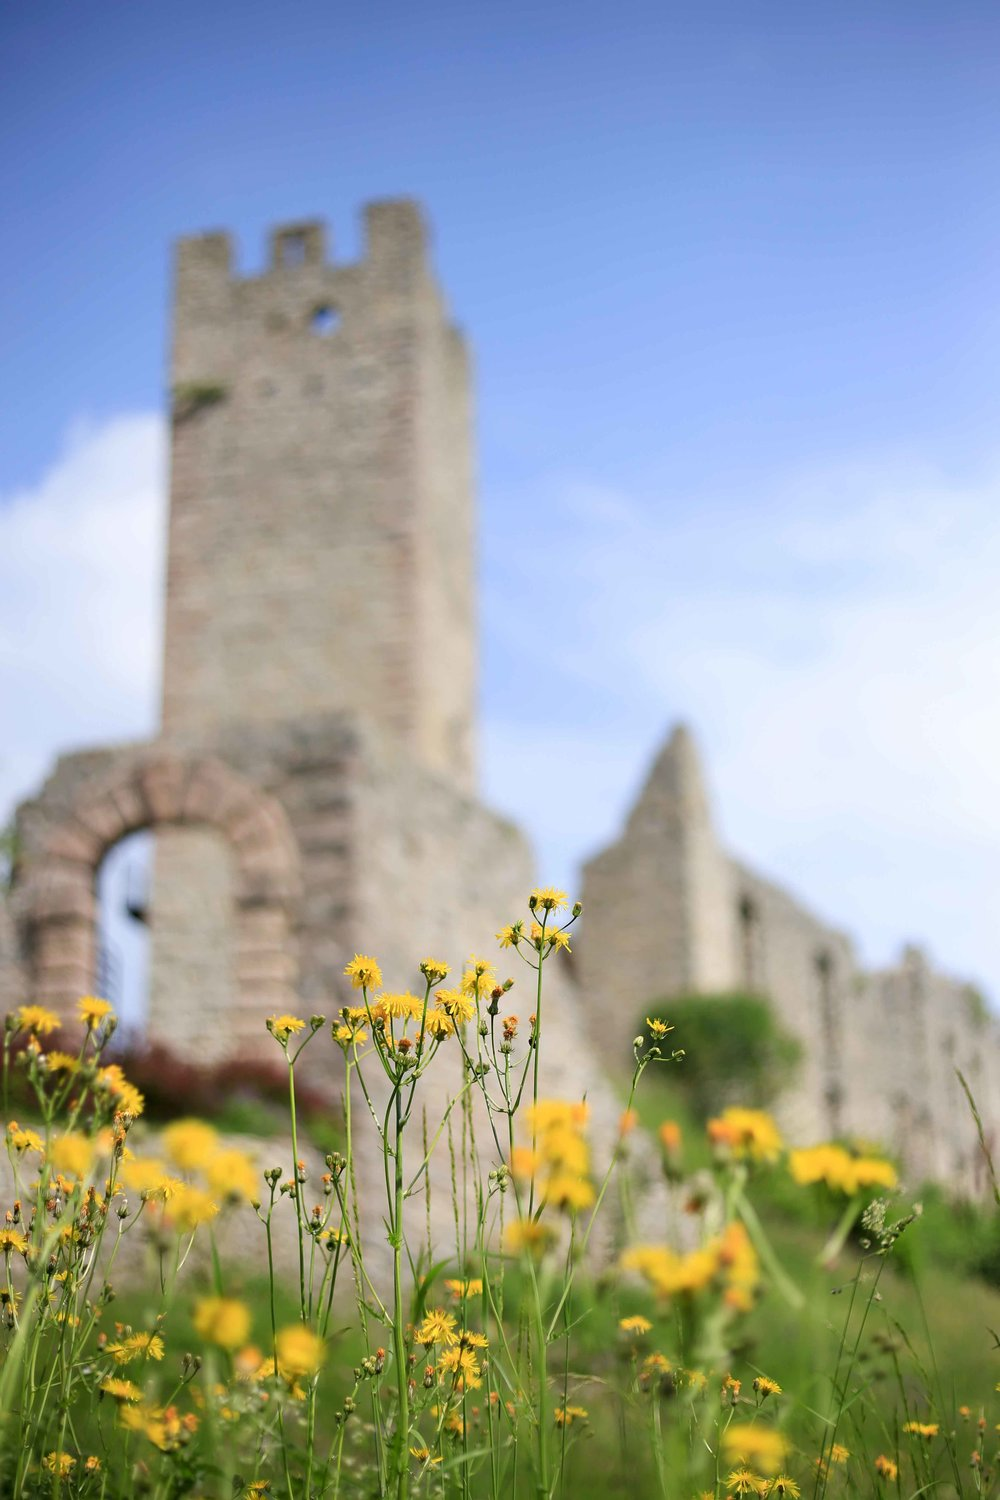 Field of dandelions in front of Belfort Castle.